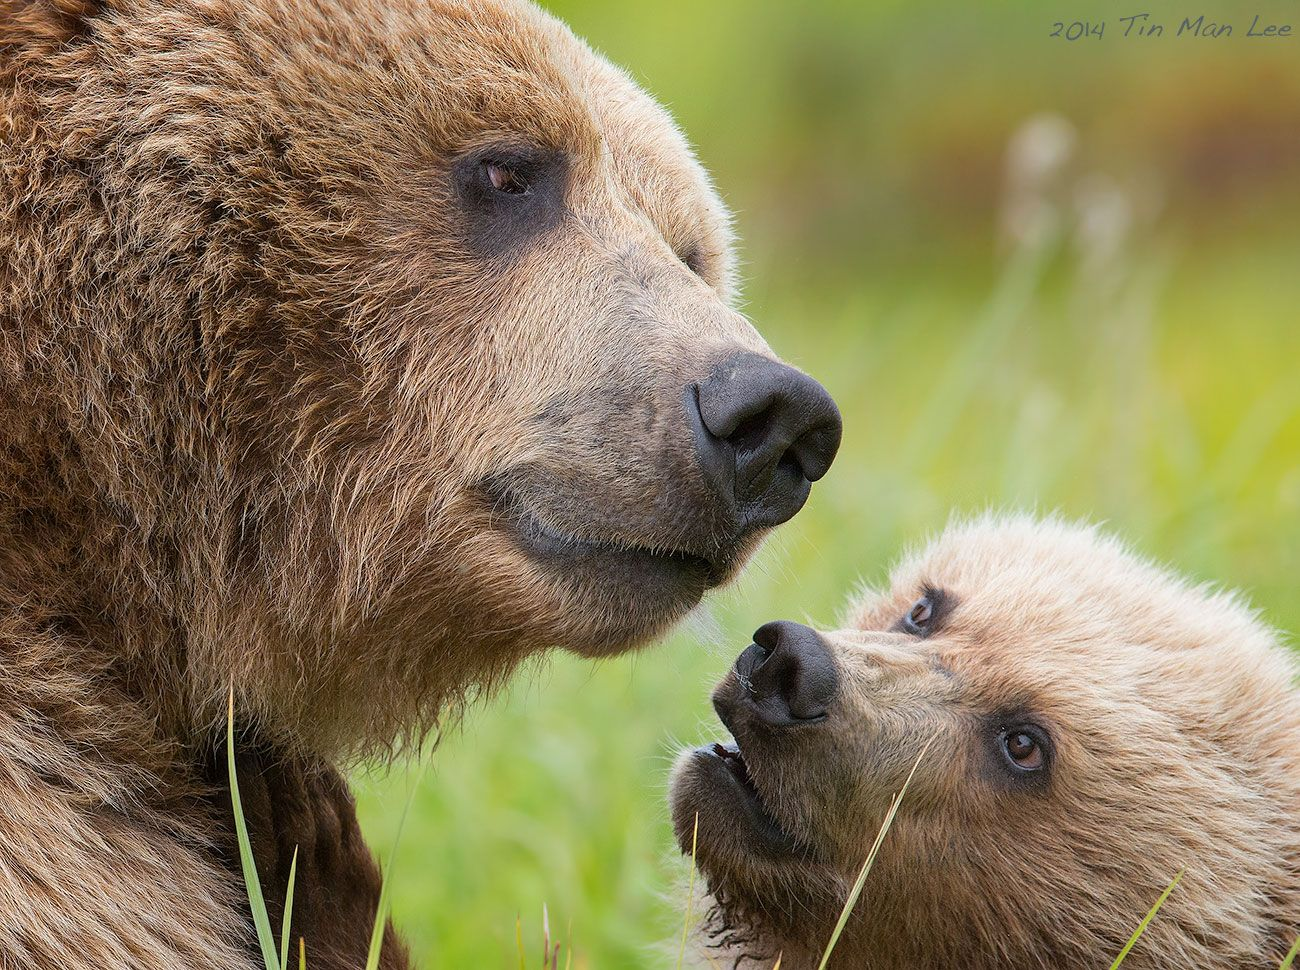 The mama bear looked so wise, as if listening to the story ...